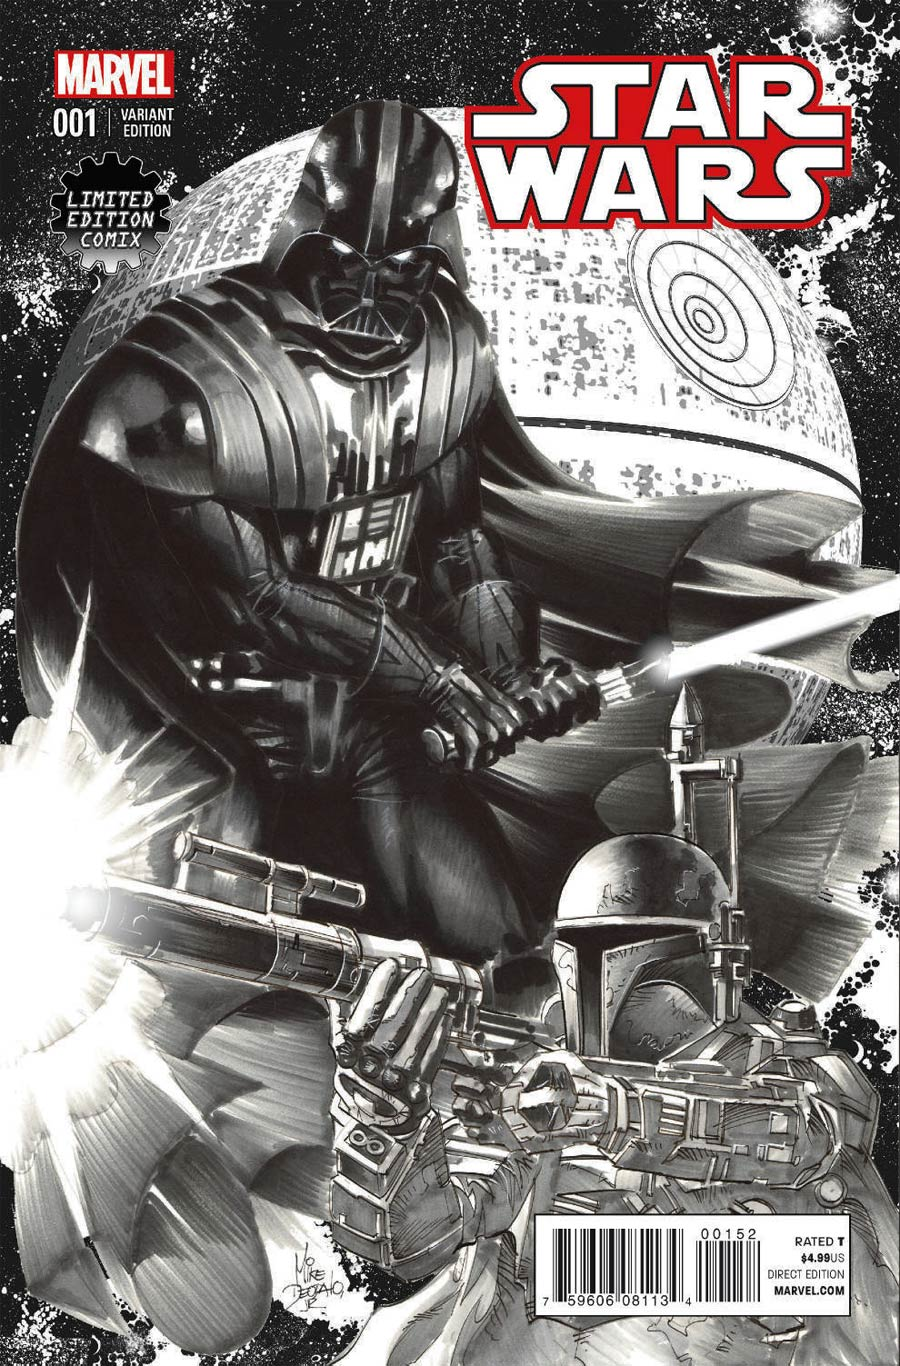 Star Wars #1 (Mike Deodato Limited Edition Comix Sketch Variant Cover) (14.01.2015)